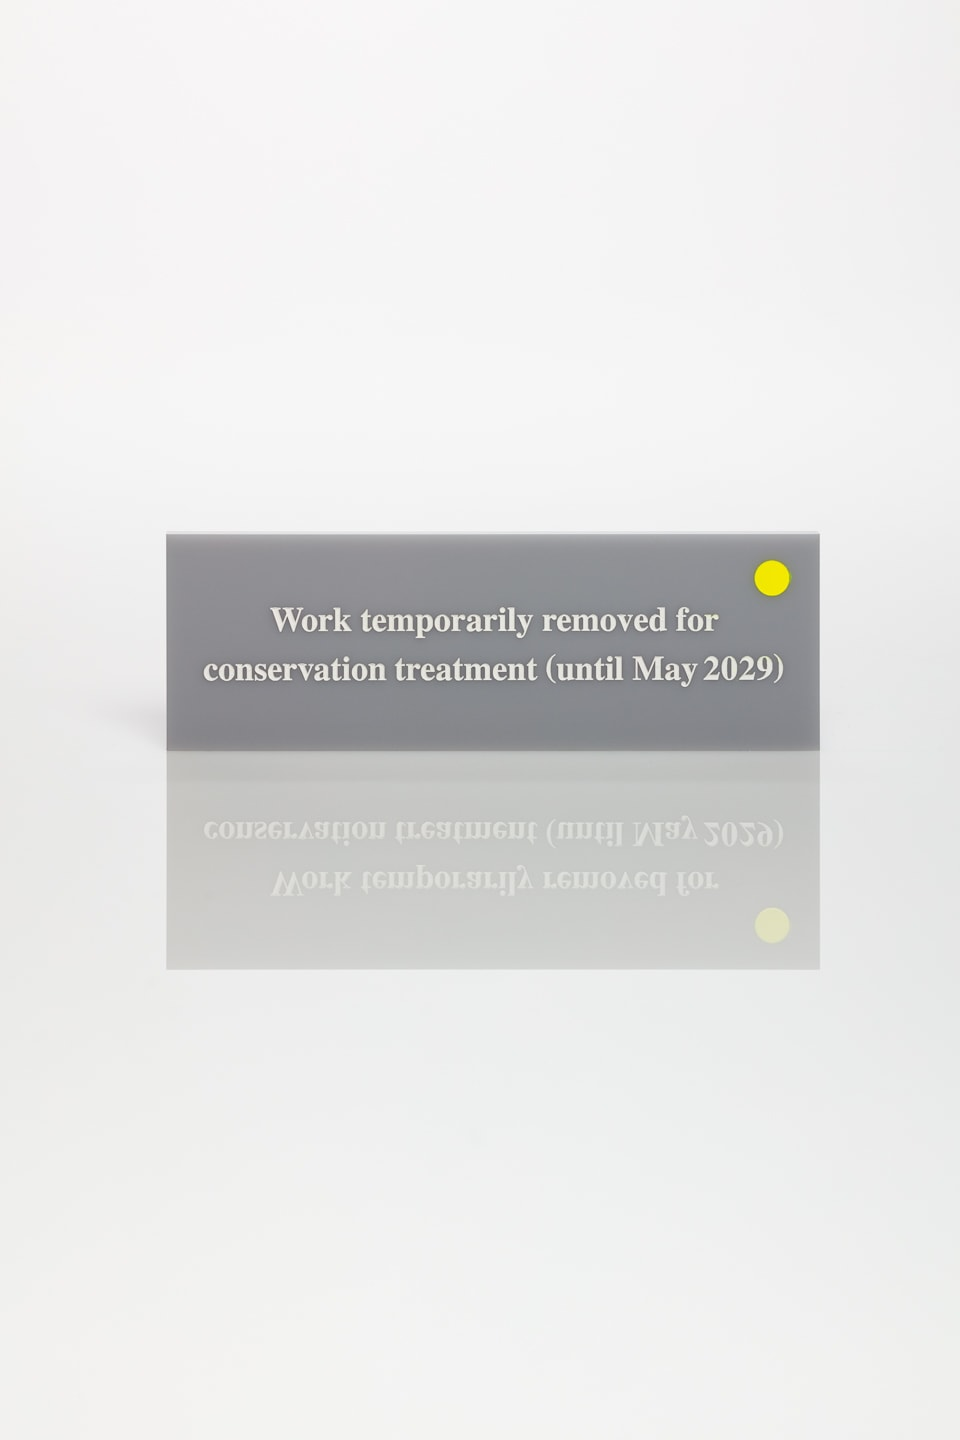 Anna Blessmann and Peter Saville Work temporarily removed for conservation treatment (until May 2029), 2015 Perspex Grey 9981. Text etched and infilled in white with fluorescent yellow 809C dot. Accompanied by a signed certificate. 15 x 5 x 0.5 cm Edition of 20